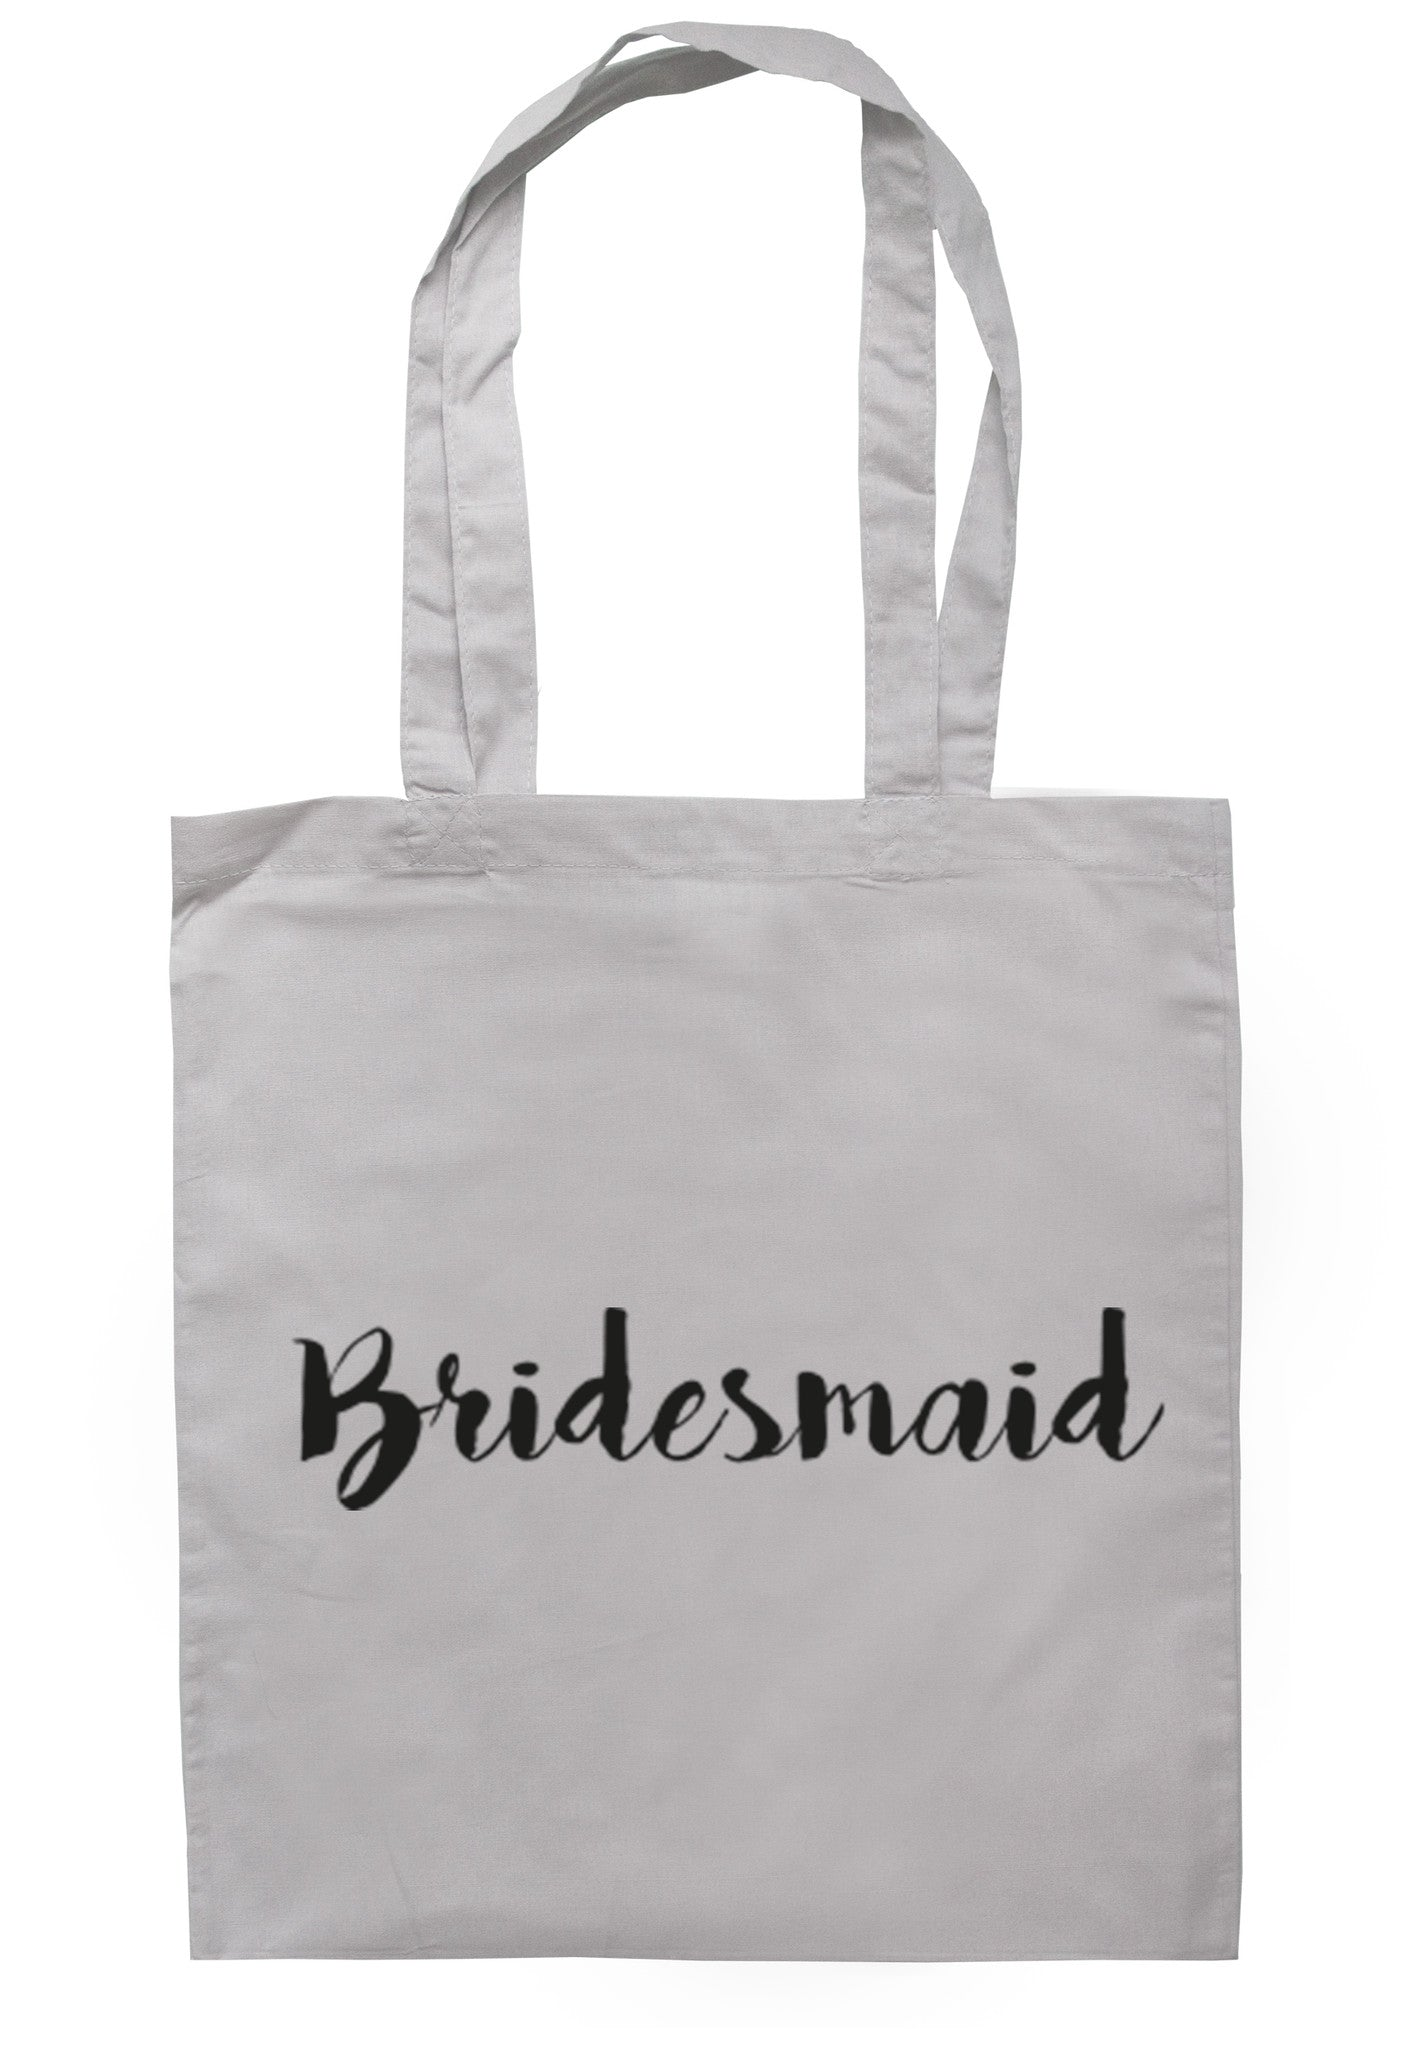 Bridesmaid Tote Bag TB0023 - Illustrated Identity Ltd.